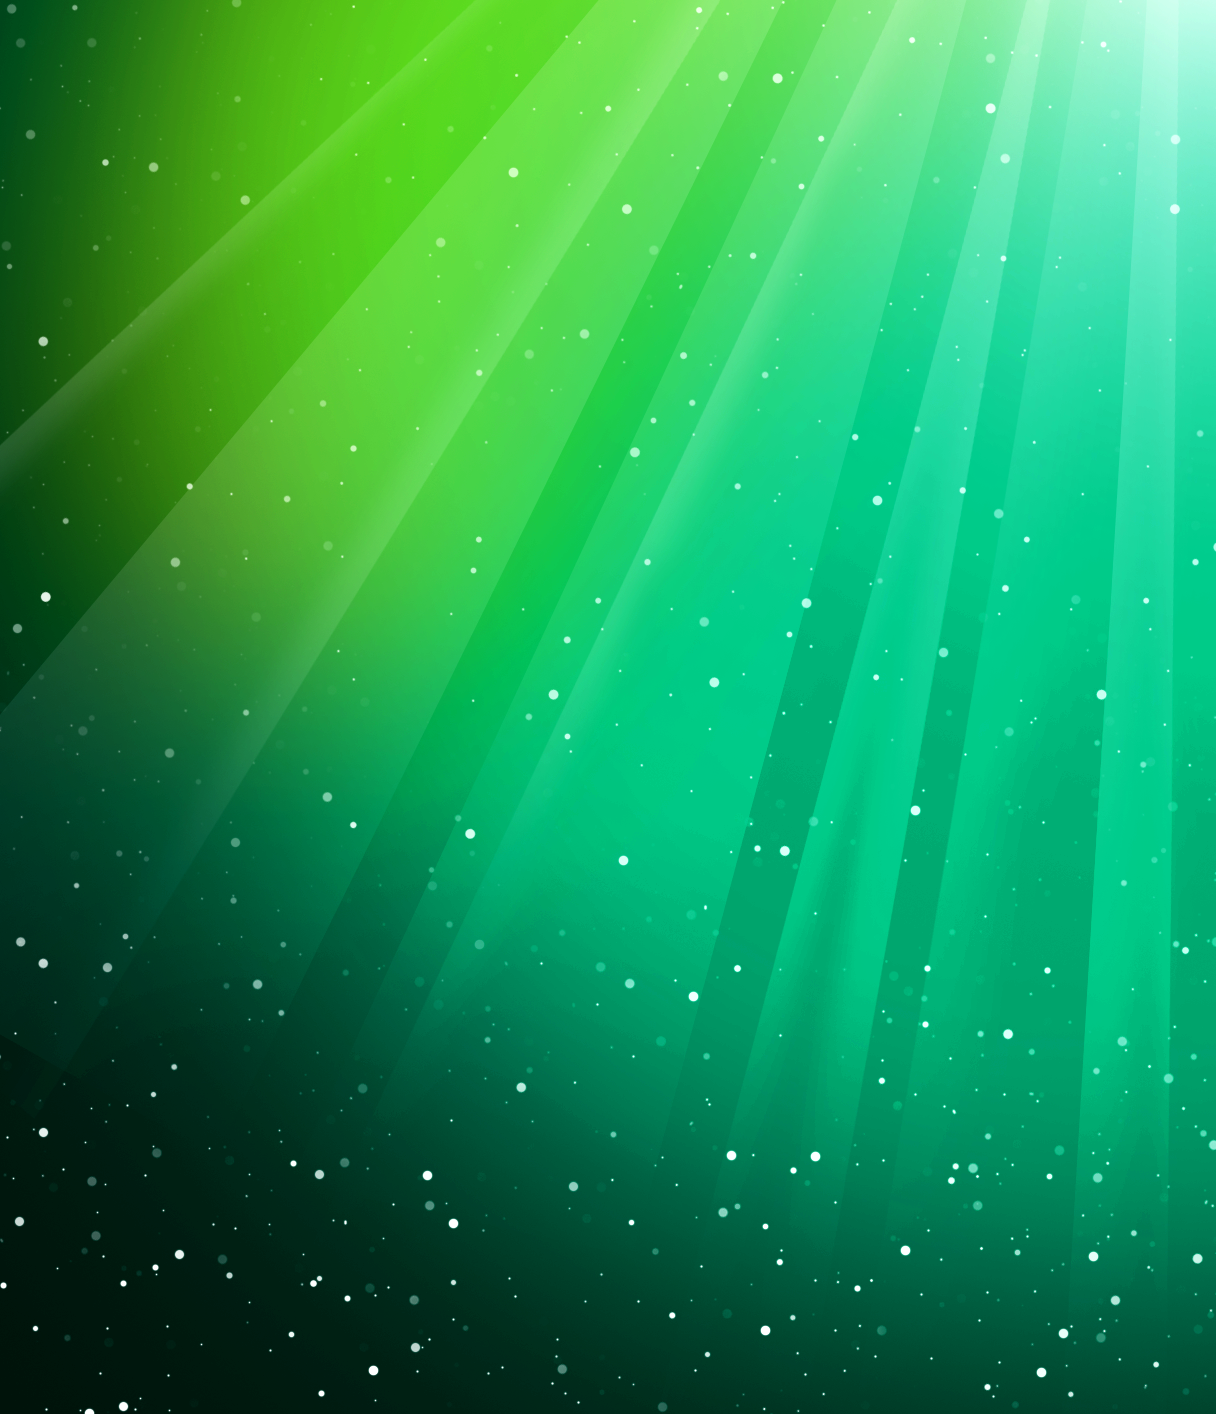 Green And Blue Abstract Wallpaper